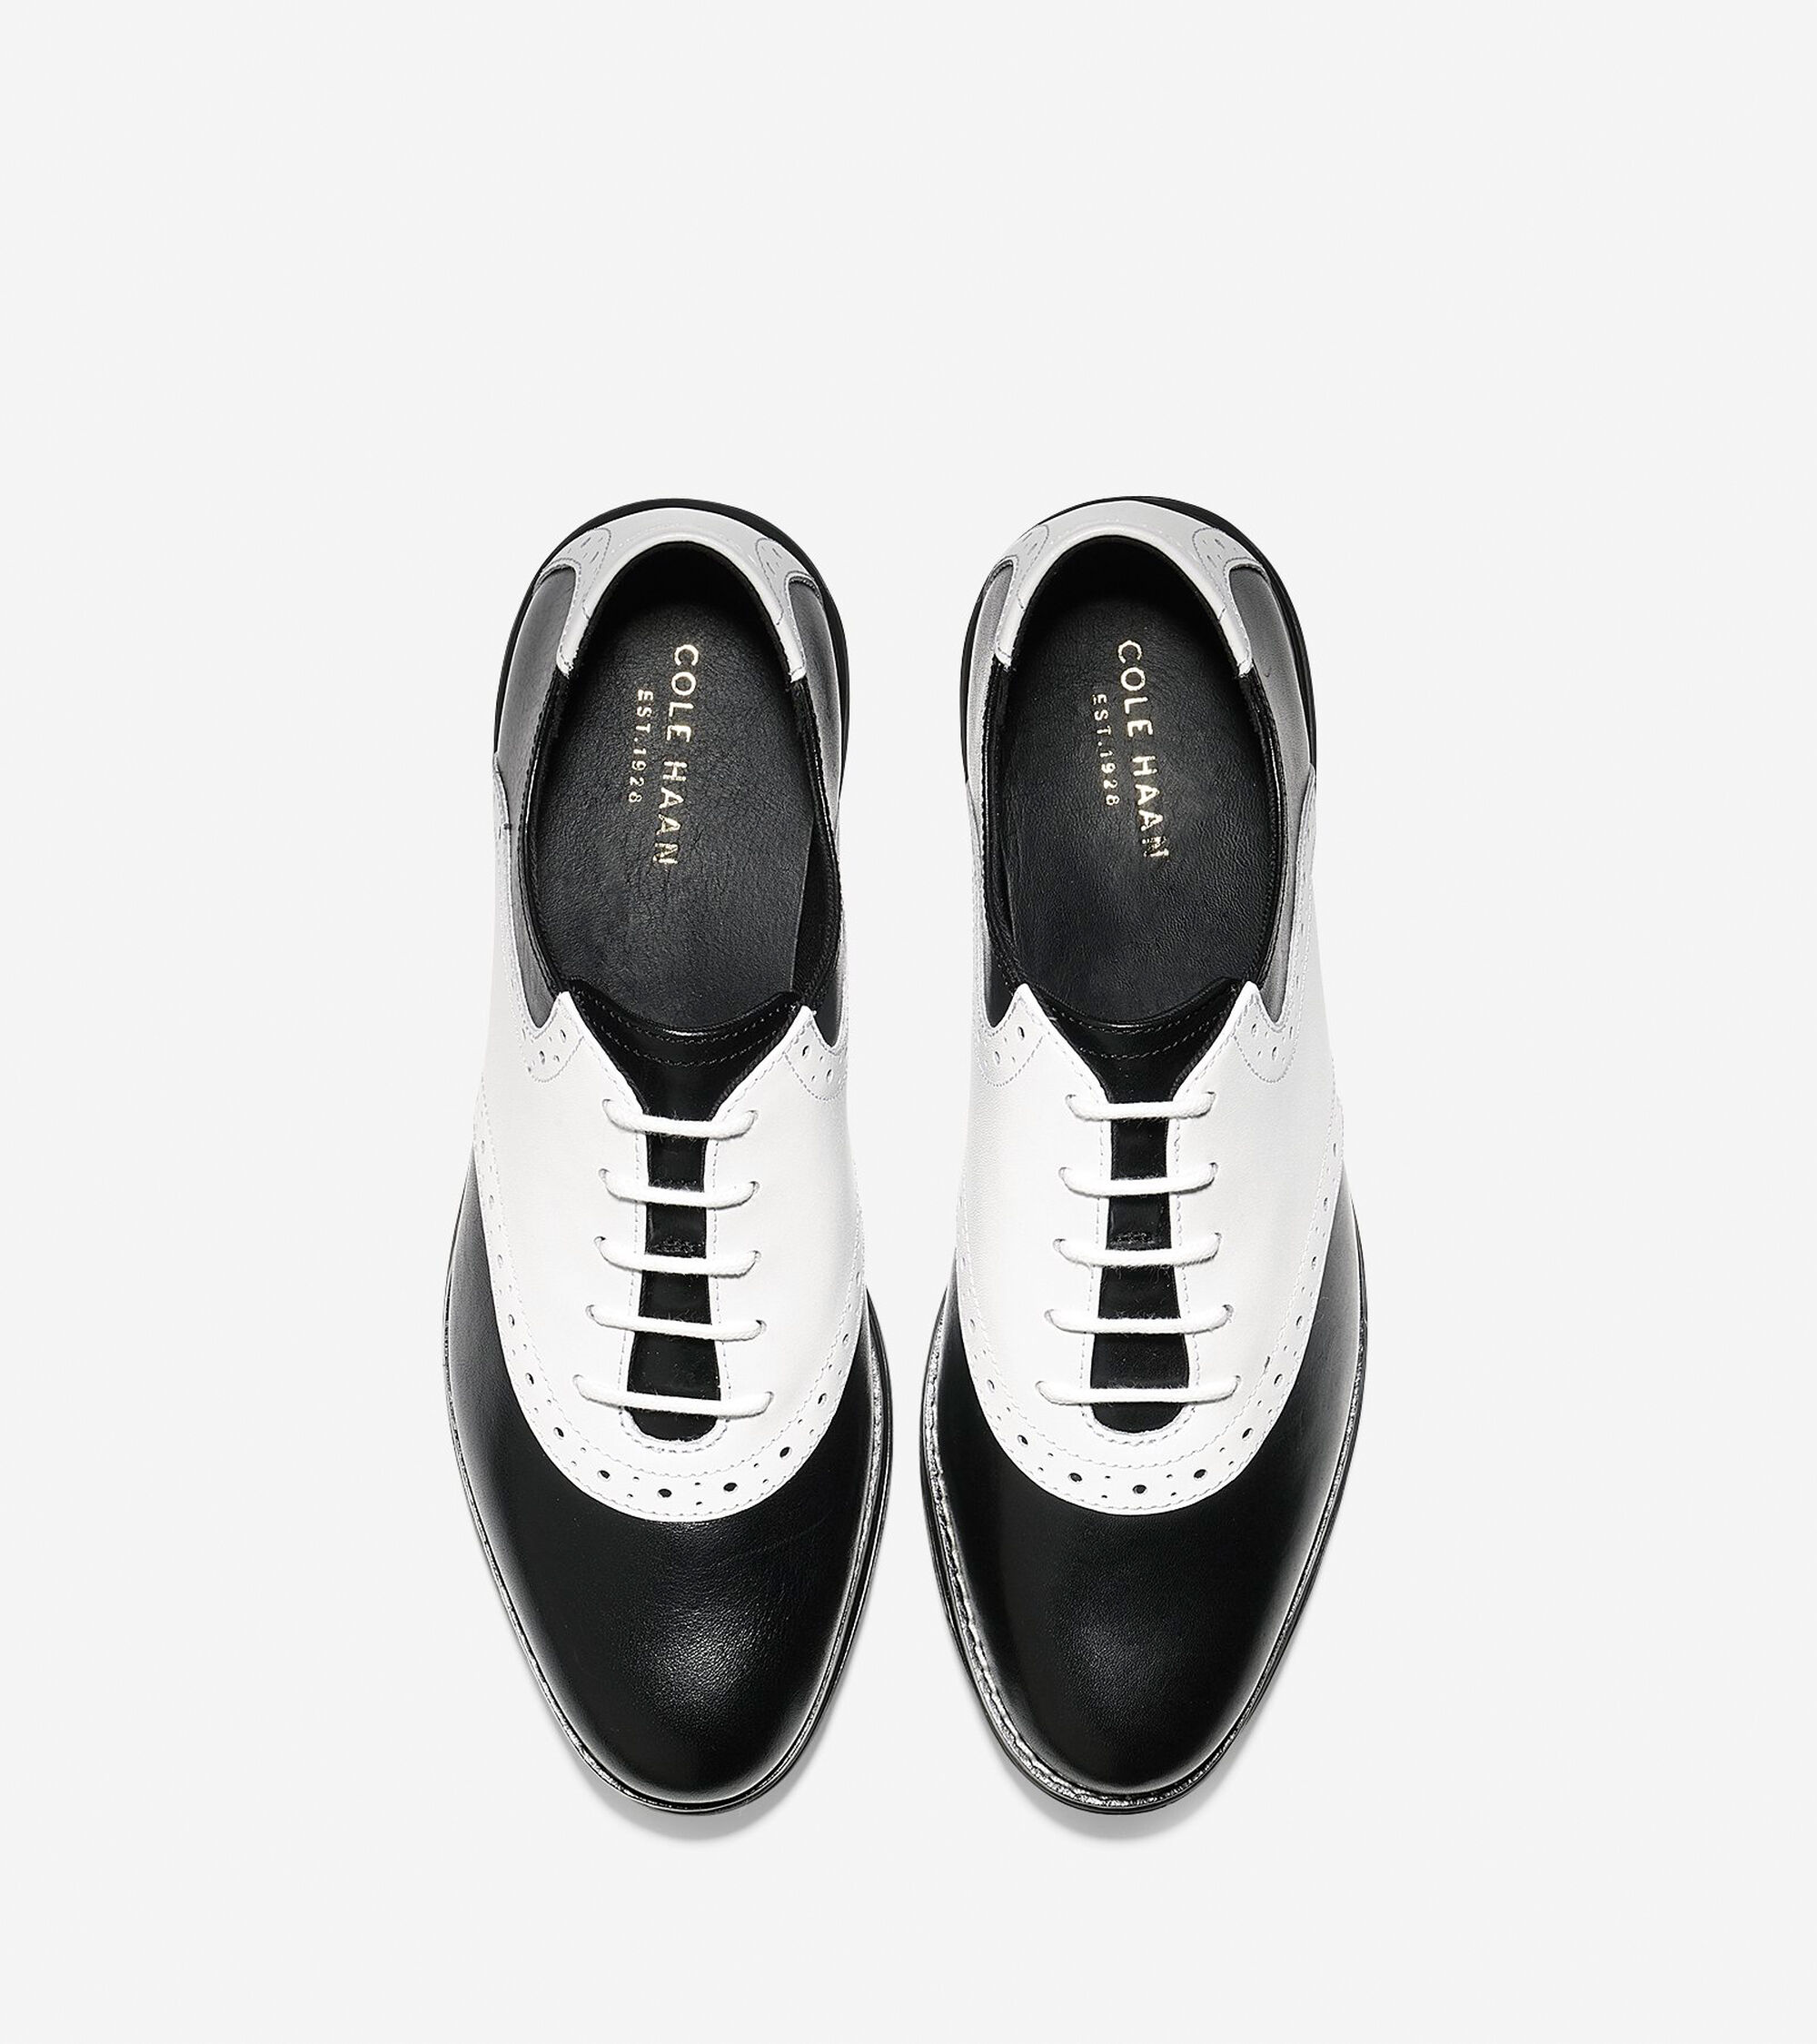 Vans Old Skool Skate Shoe; Vans Old Skool Skate Shoe. Black/White style # $59 99 USD. Hover image to zoom Journeys offers exclusive for Vans shoes and tees and has many different styles and colors of mens Vans as well as womens and childrens from which to choose. back to top Shipping + .